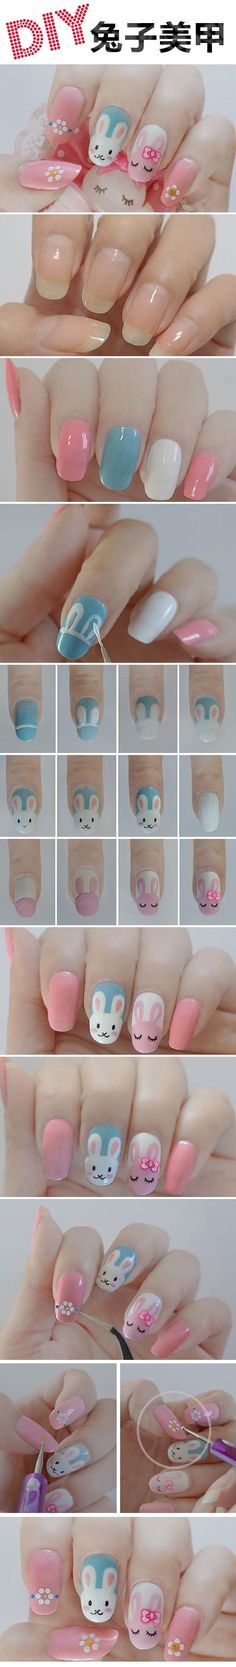 Easter bunny nails